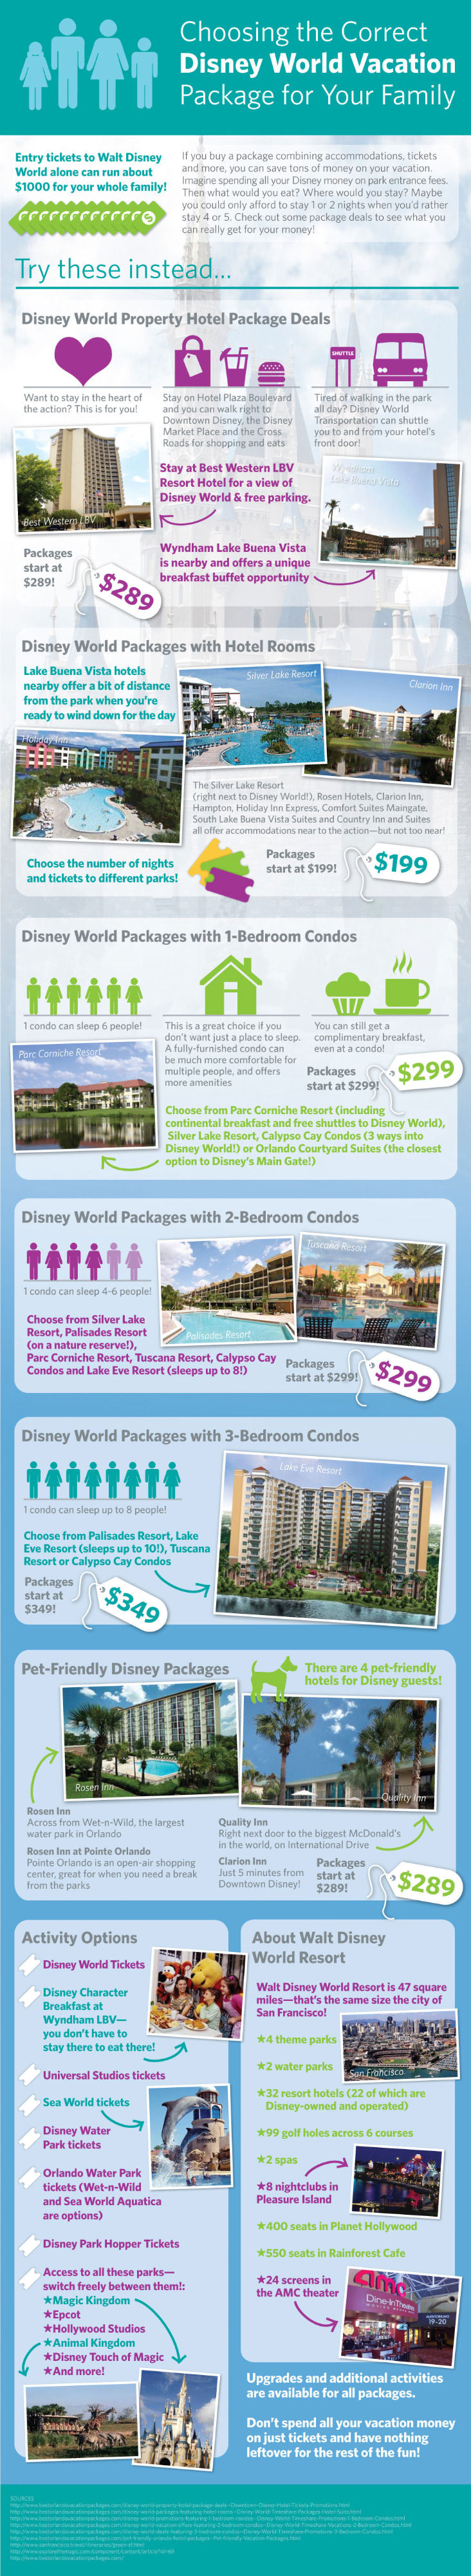 Choosing the Correct Disney World Vacation Package for your Family (Infographic)